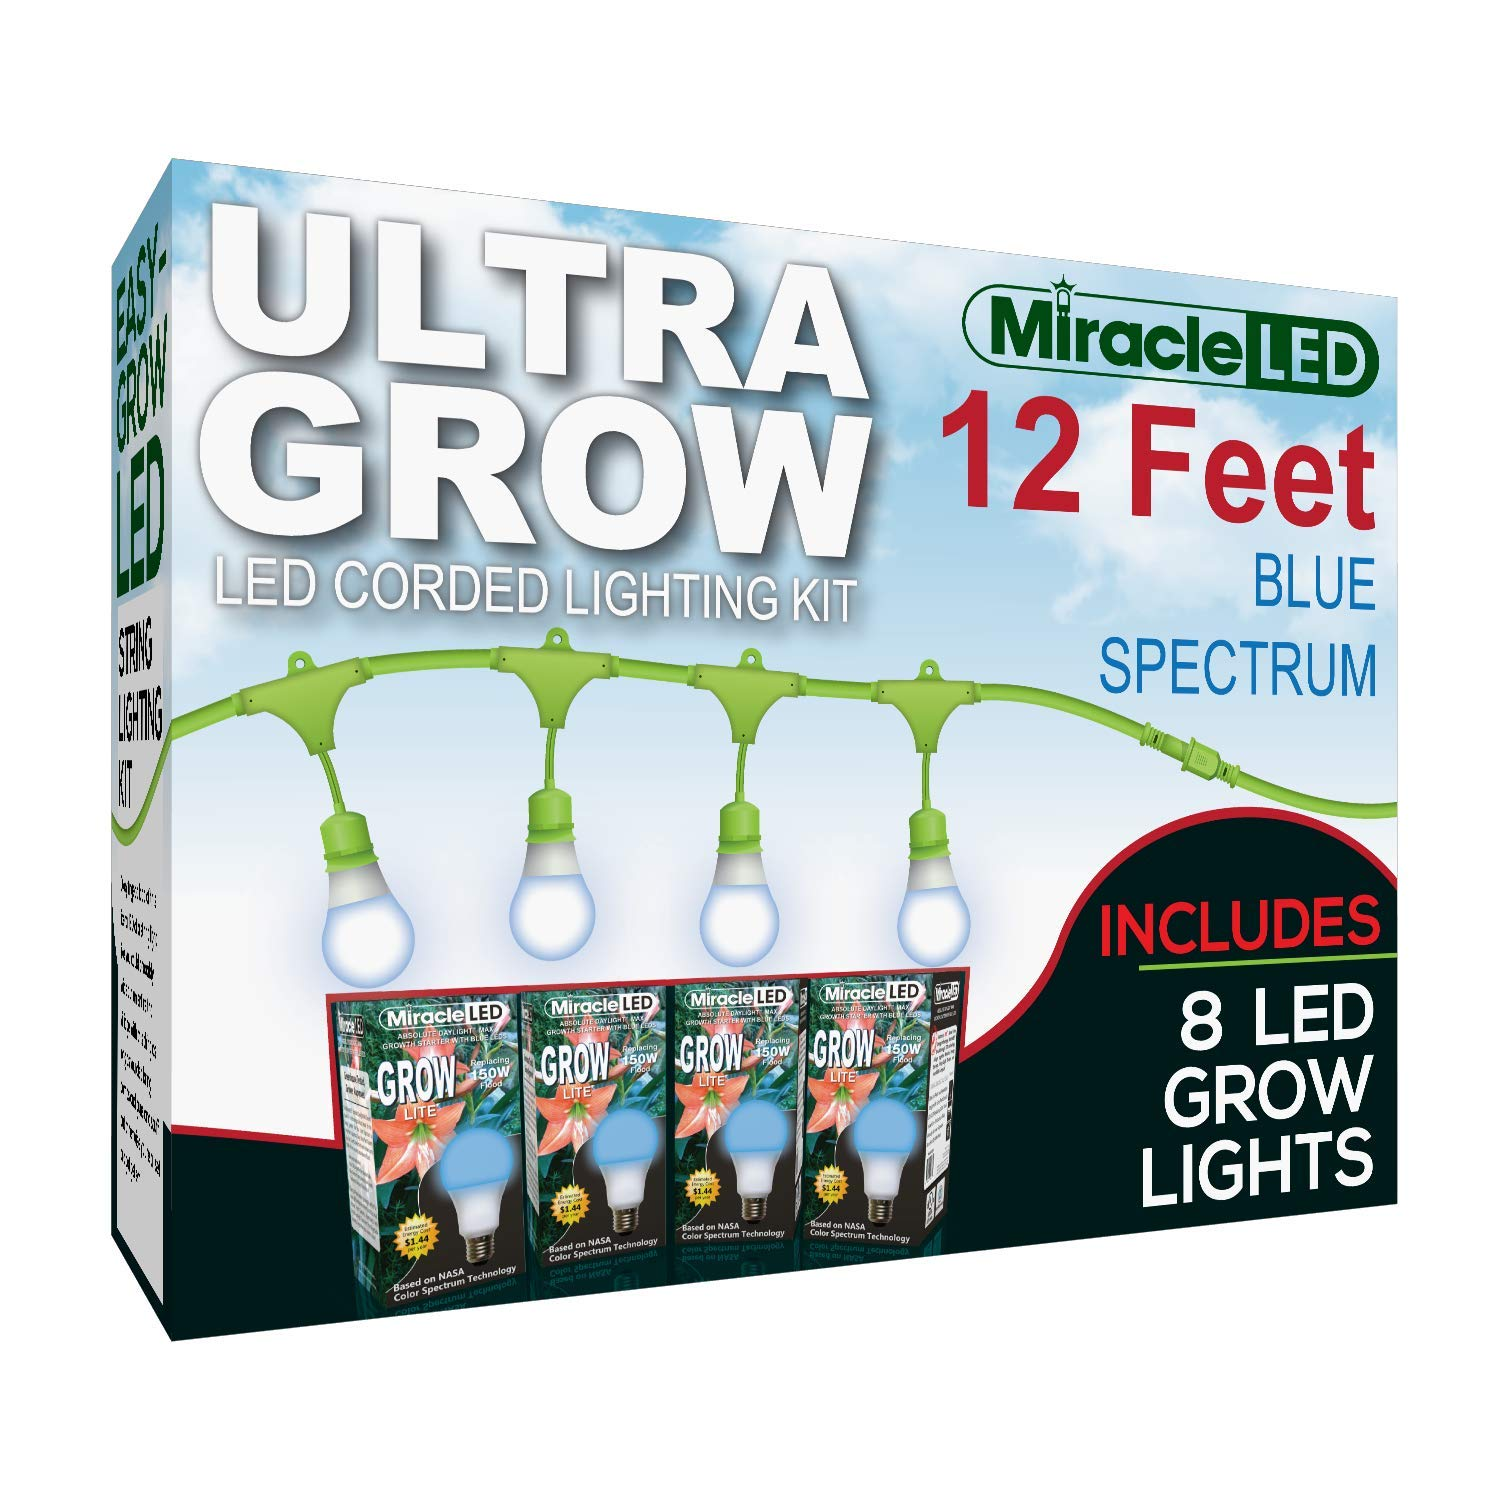 MiracleLED 602636 8-Socket 12ft Corded System Kit with Blue Spectrum Ultra Grow Lights Replacing 1000W High Pressure Sodium/Halide Bulbs,